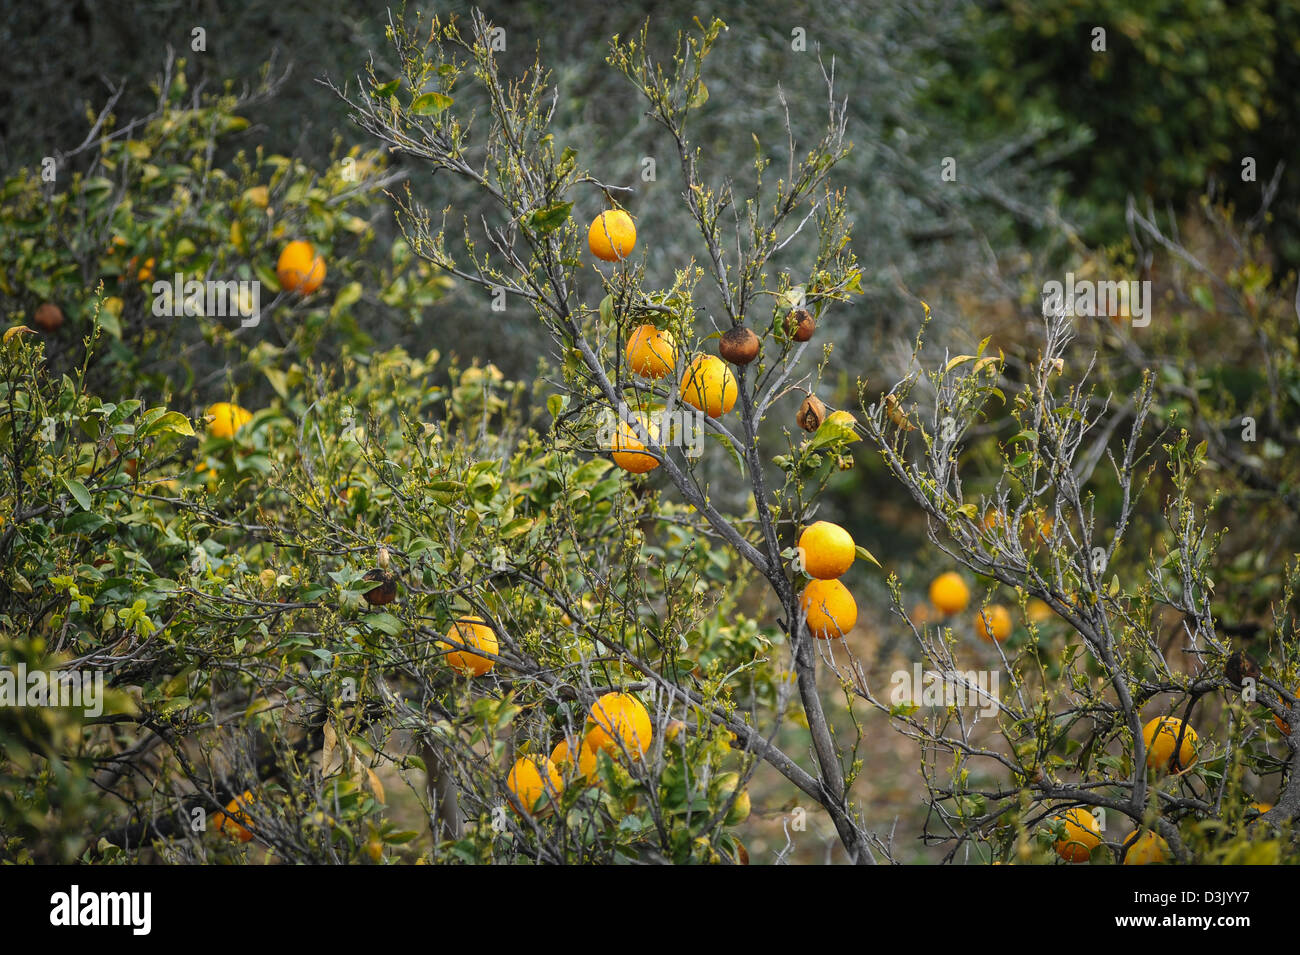 Oranges growing in springtime some of the fruit is black from frost damage. Andalusia Spain. - Stock Image